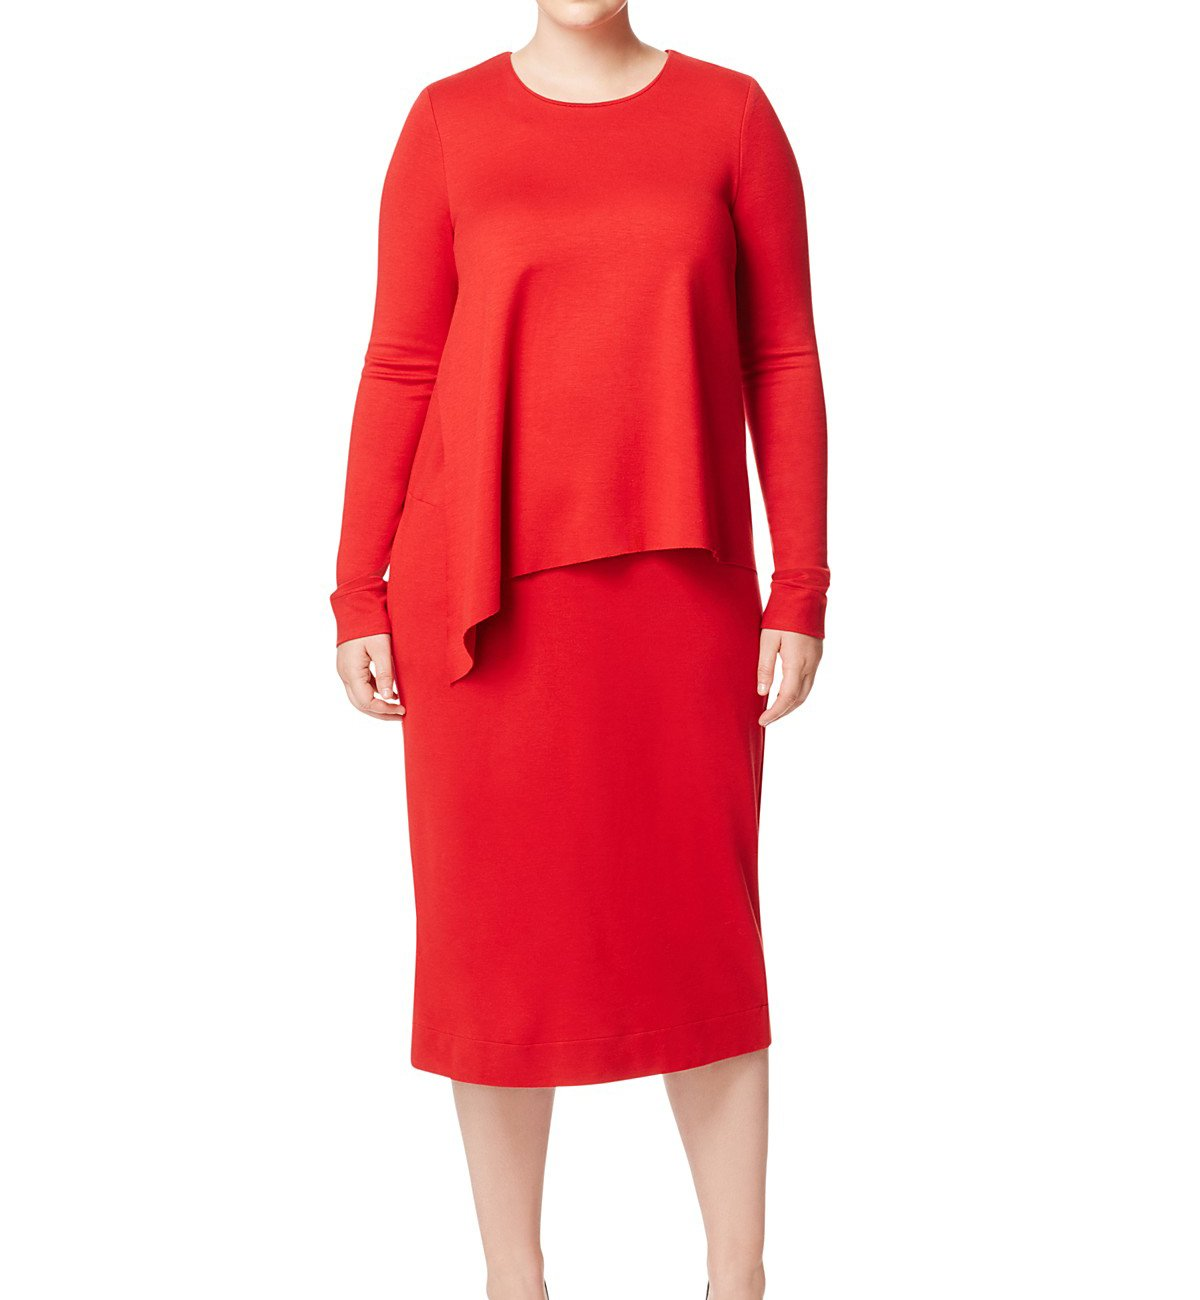 Marina Rinaldi Women's One Overlay Jersey Dress, Red, Large